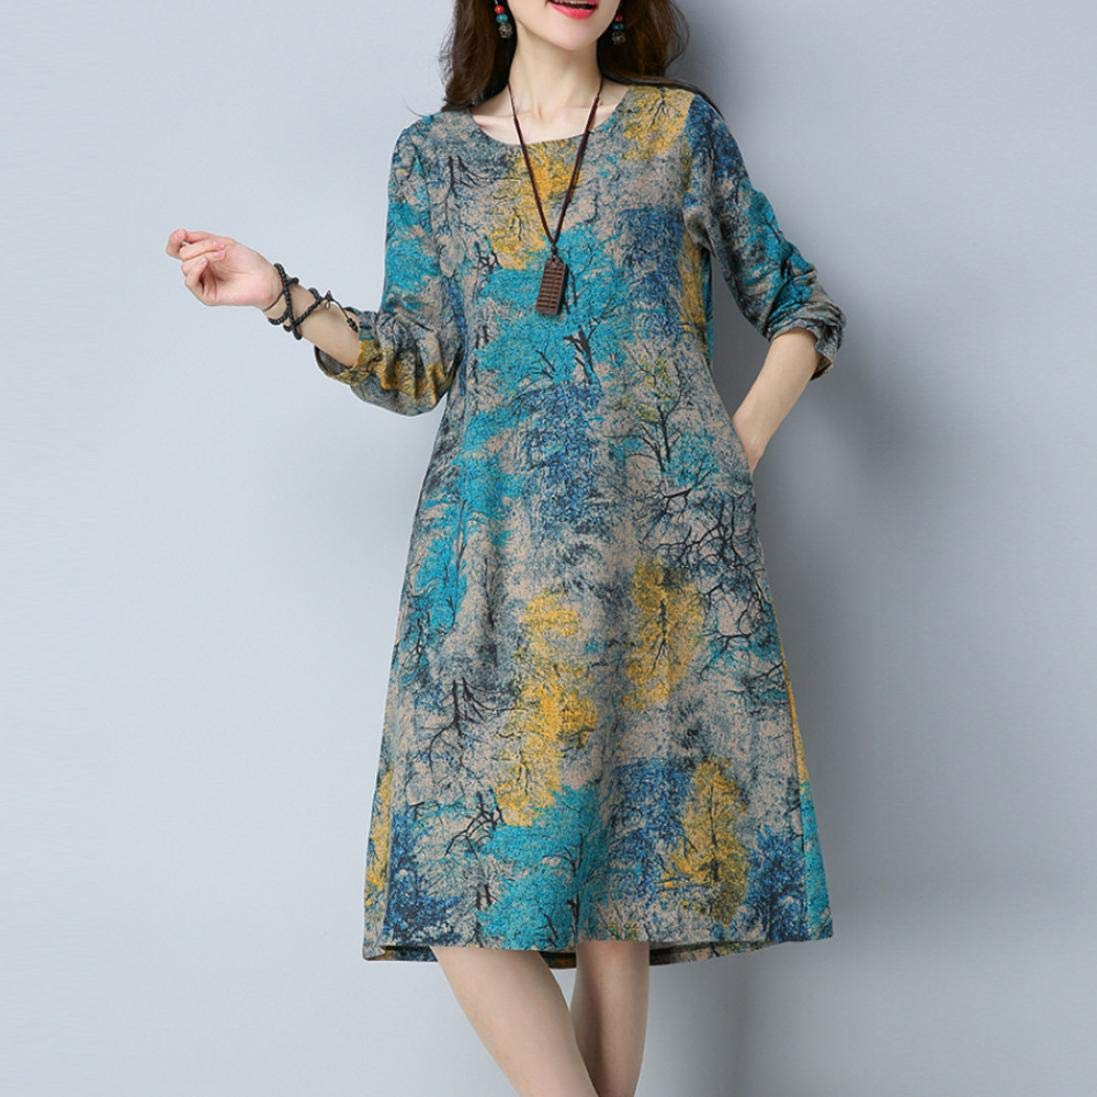 OWMEOT Women's V Neck Summer Print A-line Casual Swing Midi Skater Evening Party Long Dress Sundress Plus Size (Blue, 4XL) by OWMEOT (Image #3)